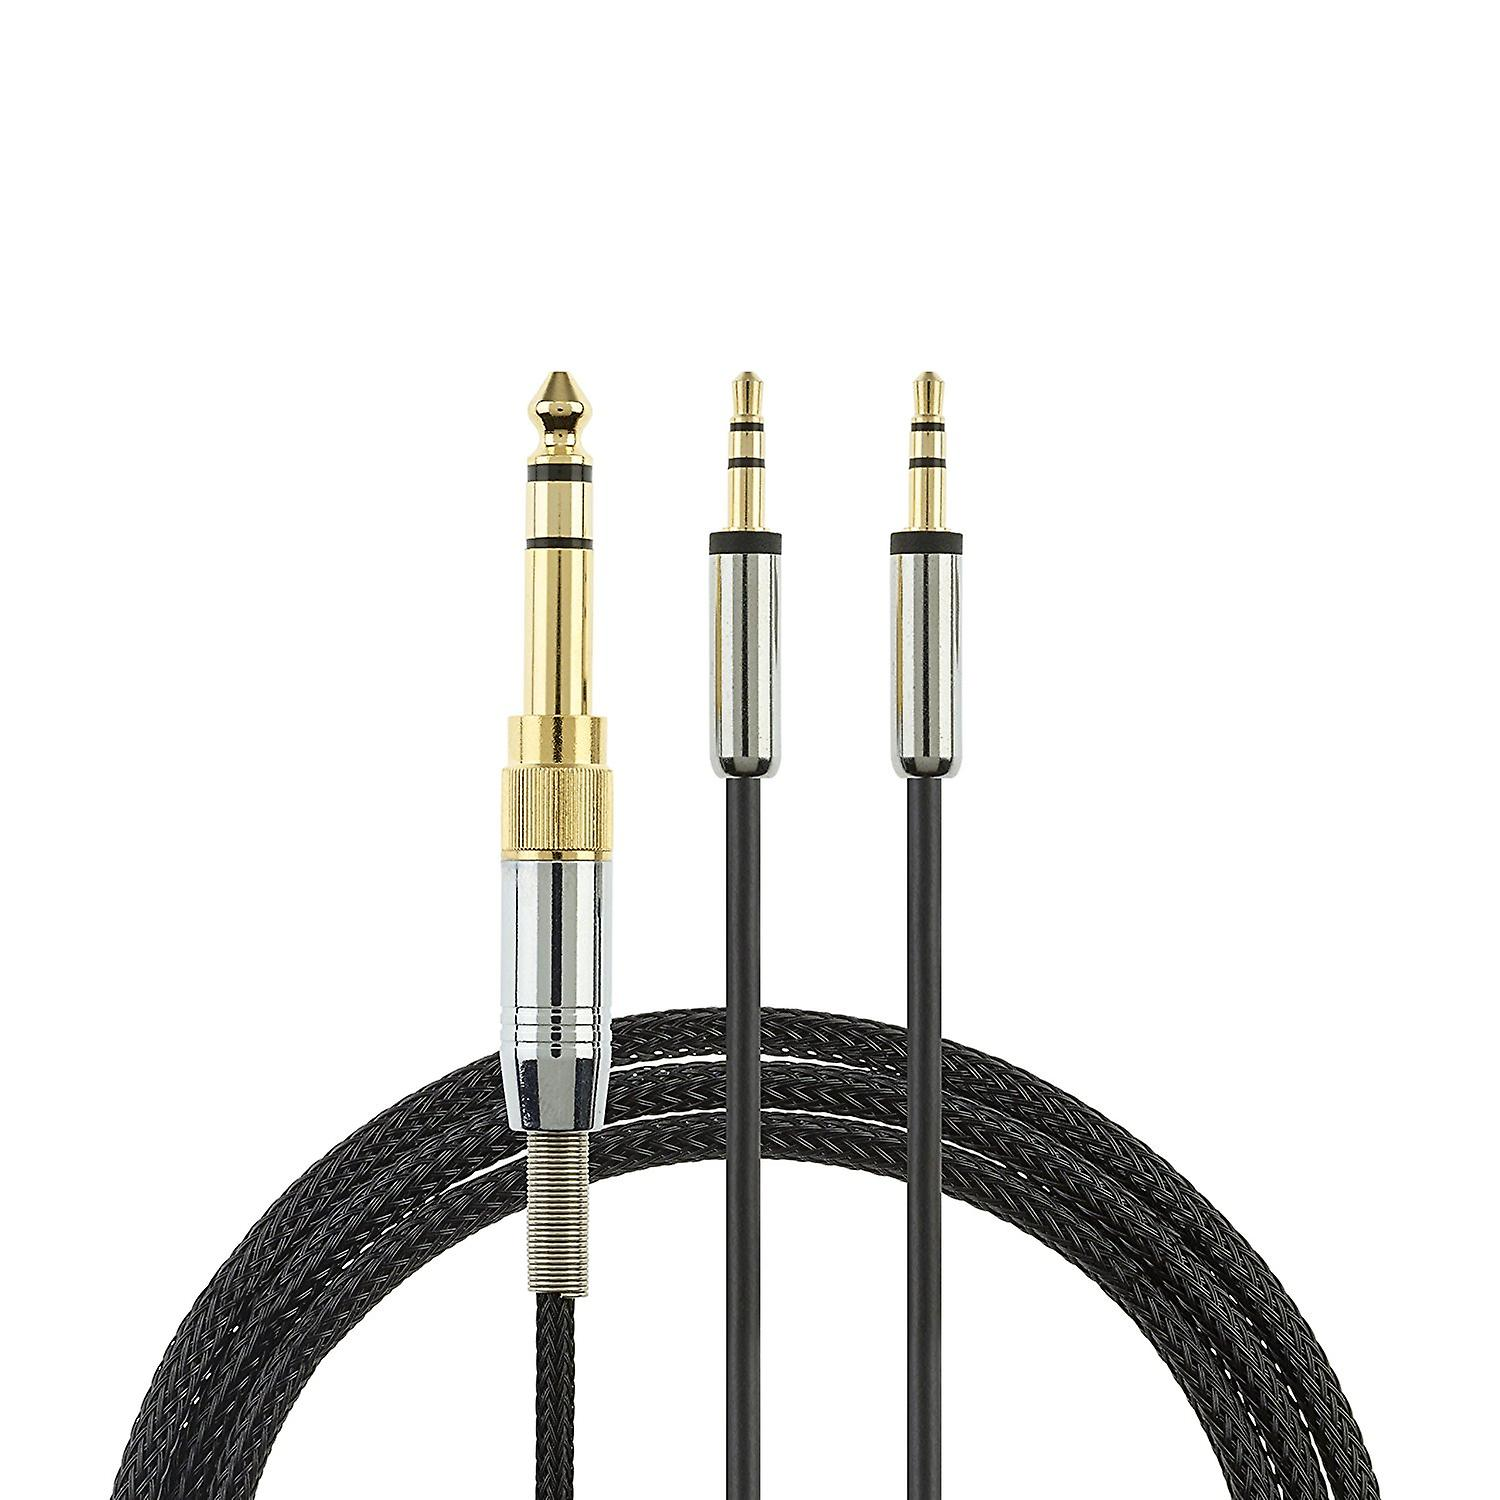 Bowers P3 Replacement Audio Cable for Bowers & Wilkins P3 Headphones